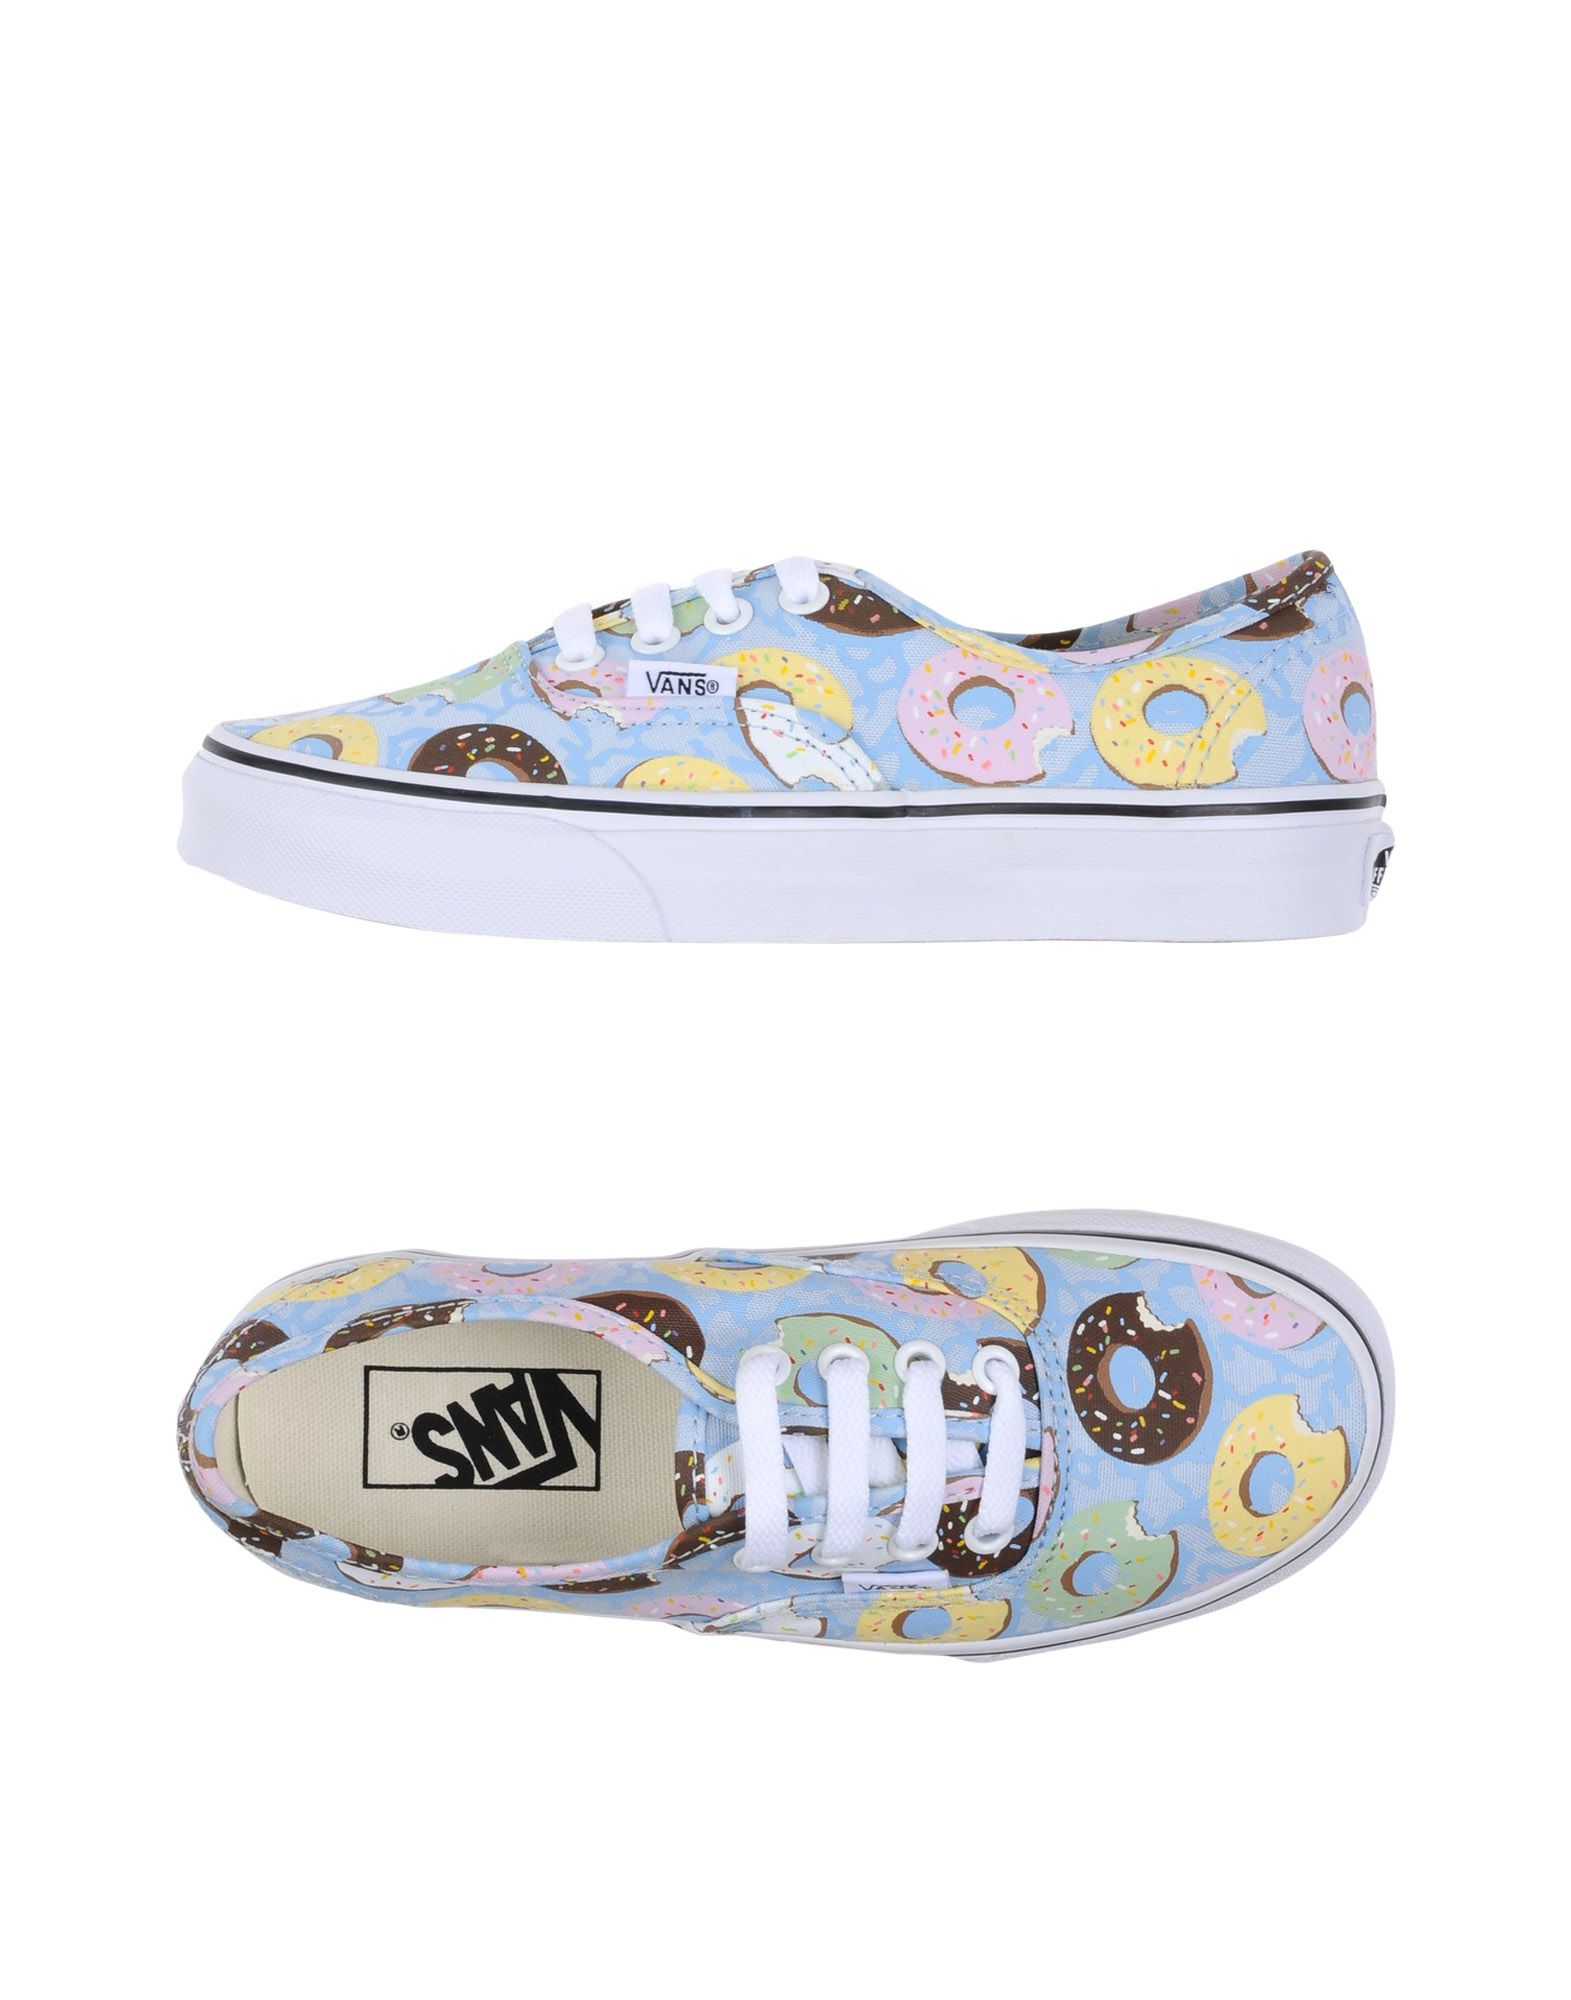 A buon mercato Sneakers Vans Donna - 11284328OF